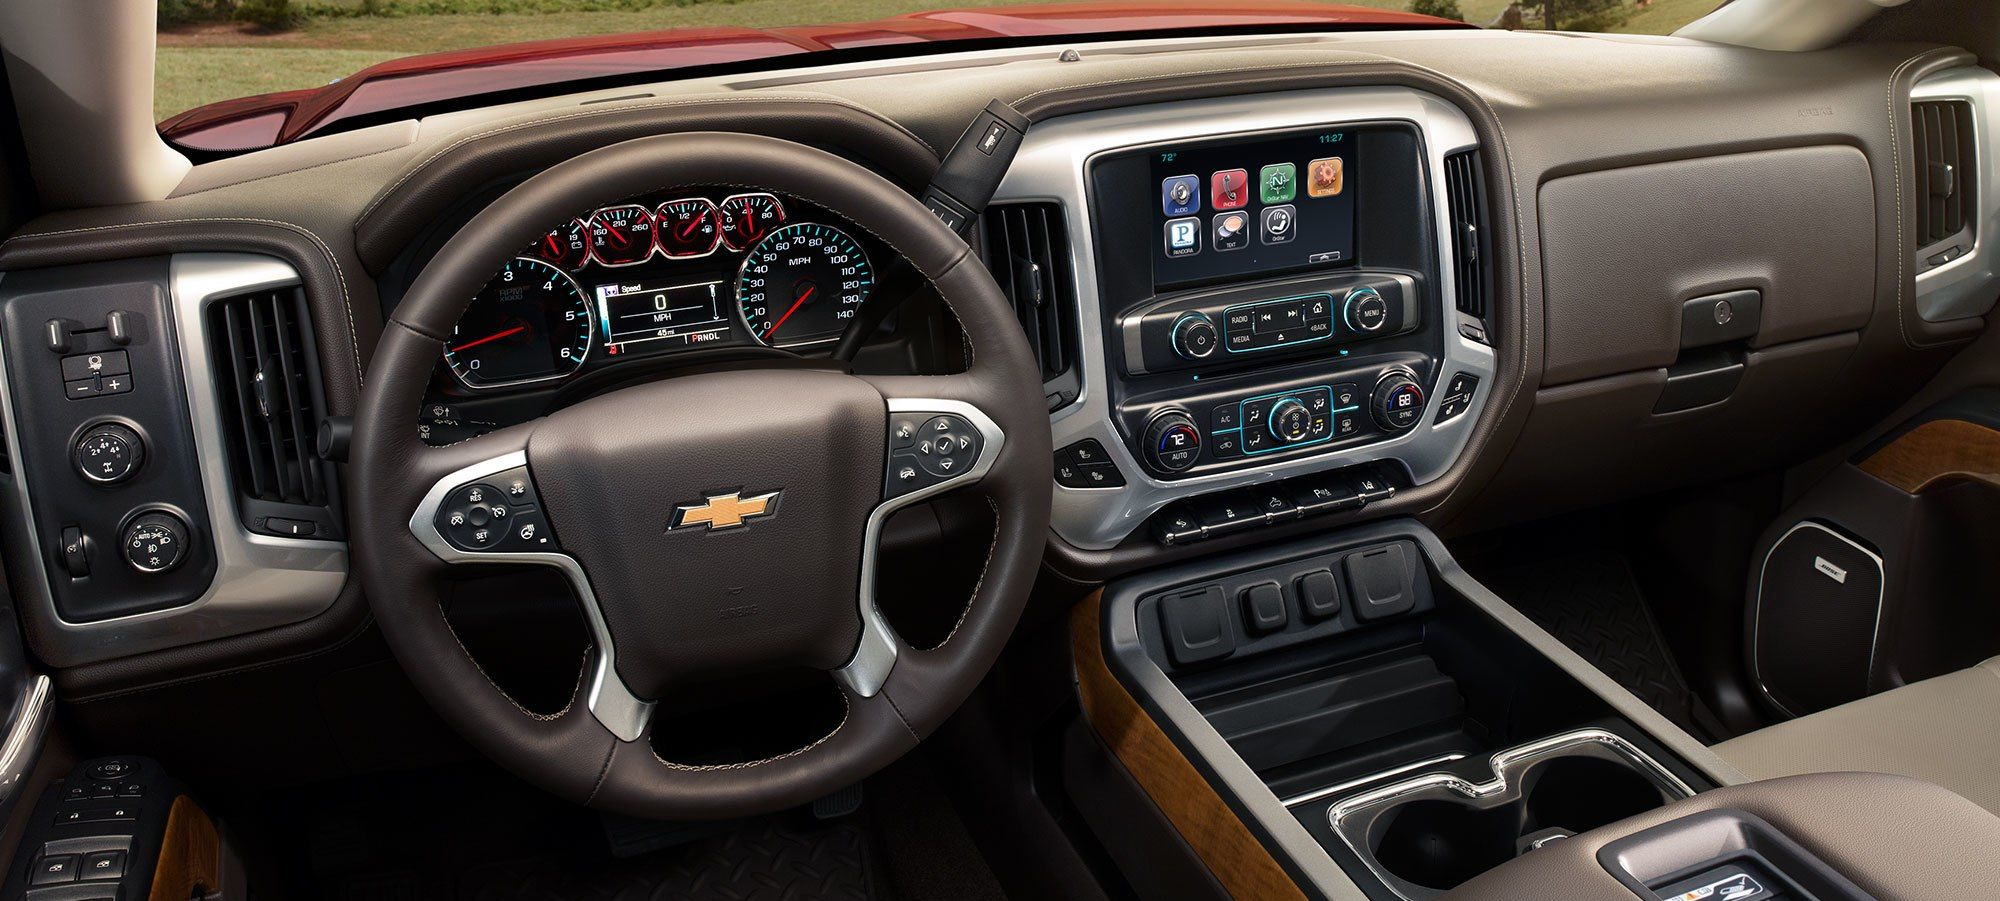 The Silverado 3500HD's Well-Appointed Dashboard